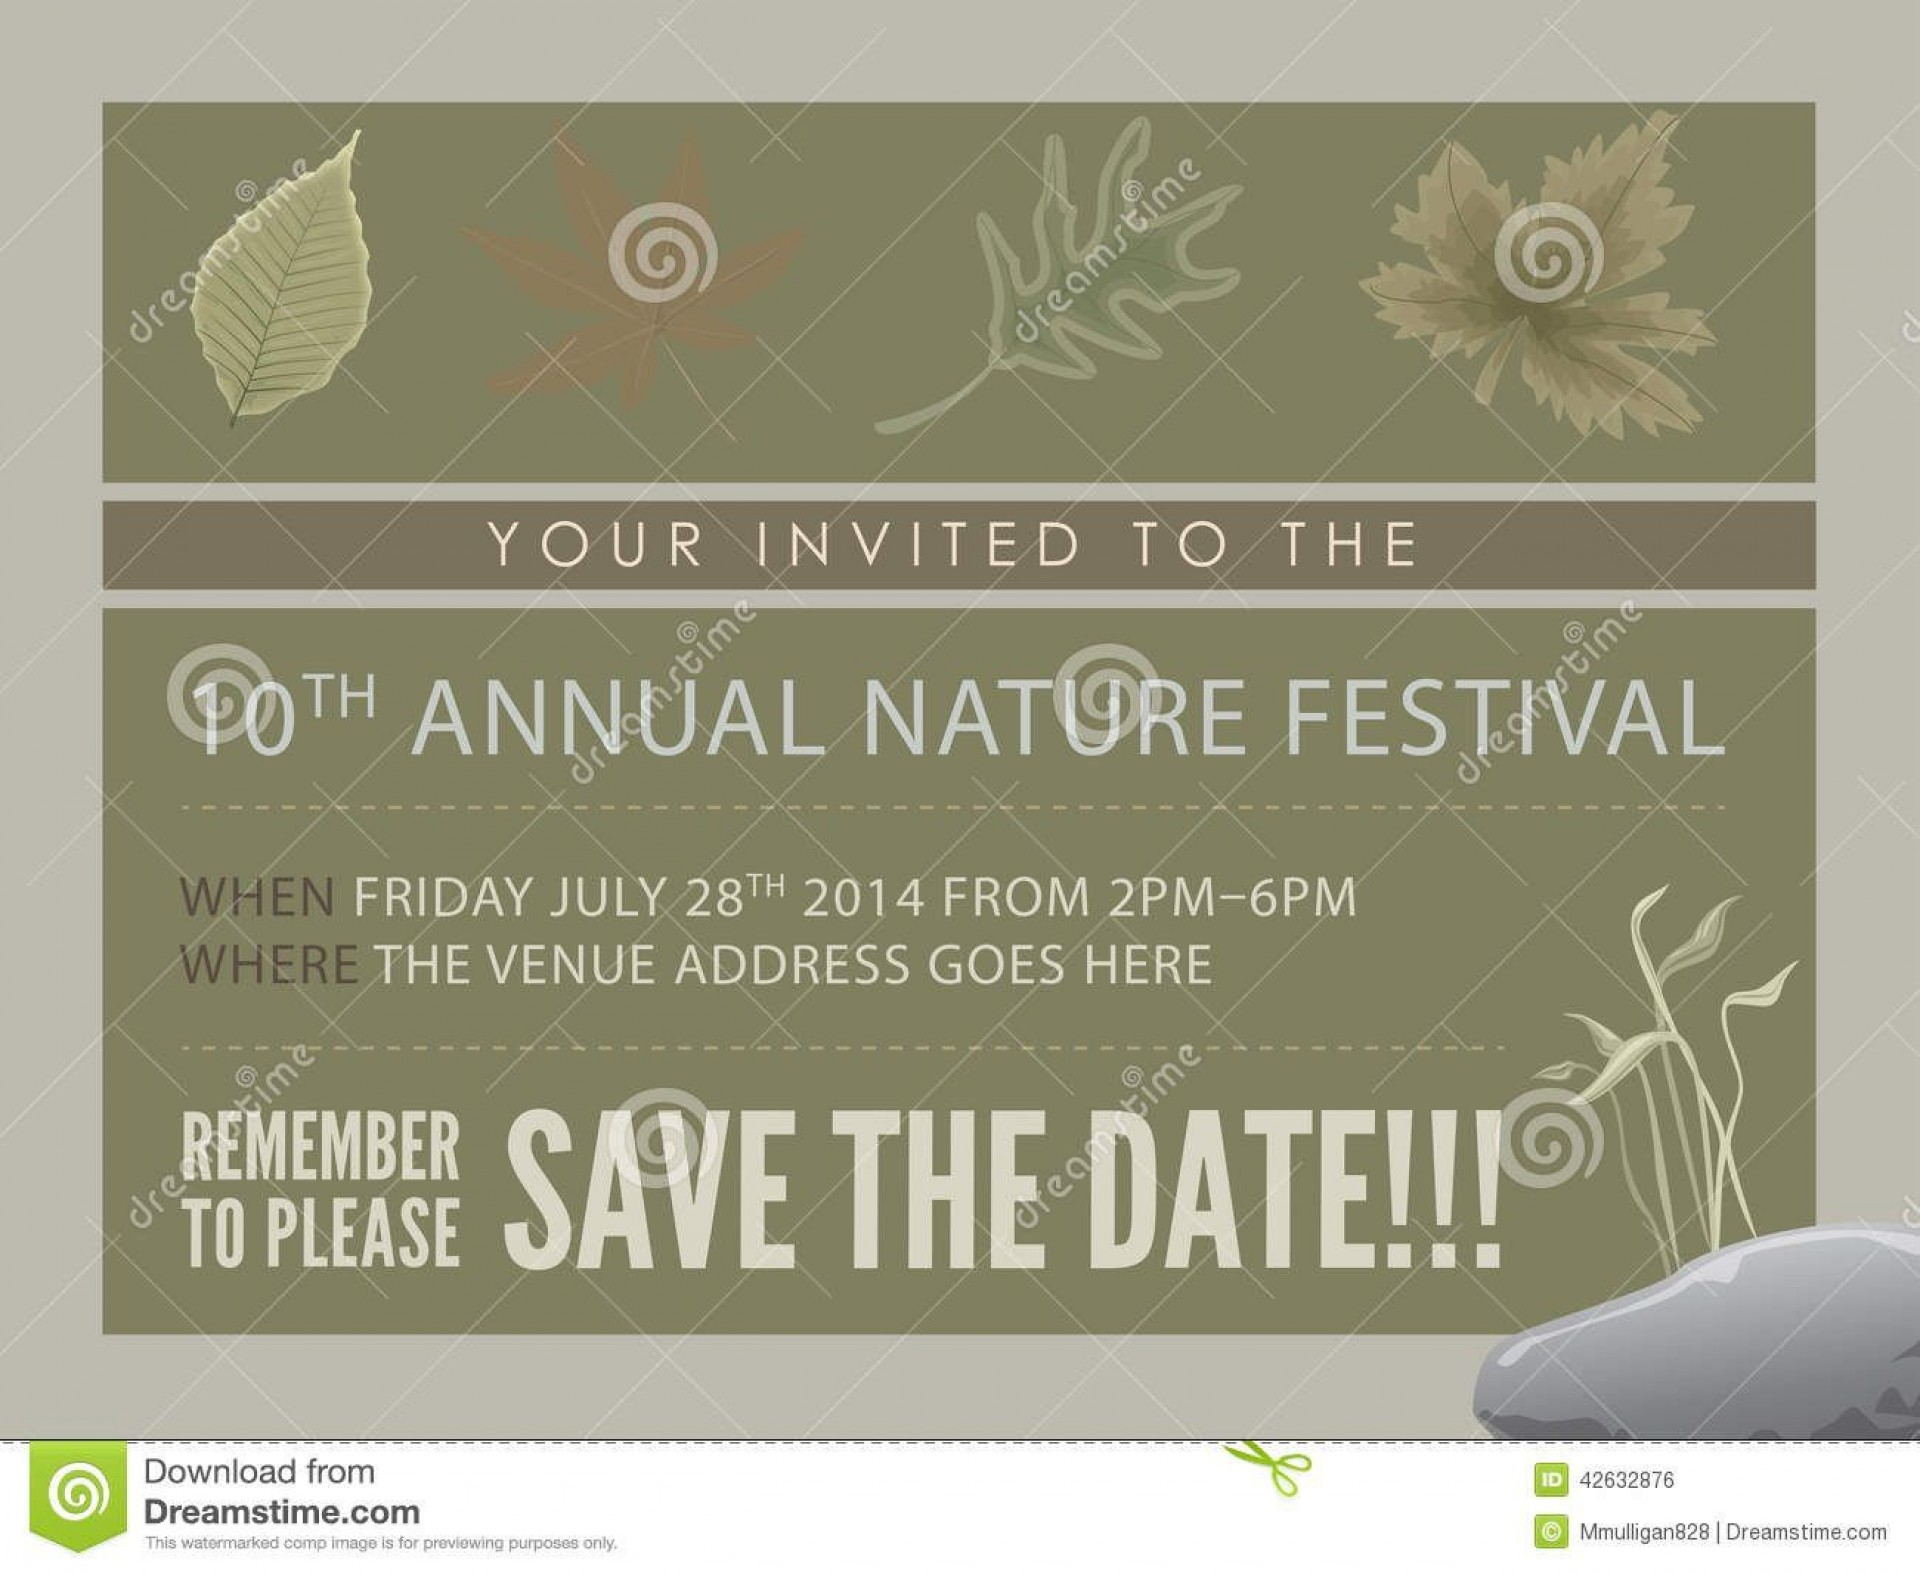 008 Best Save The Date Flyer Template Example  Word Event1920